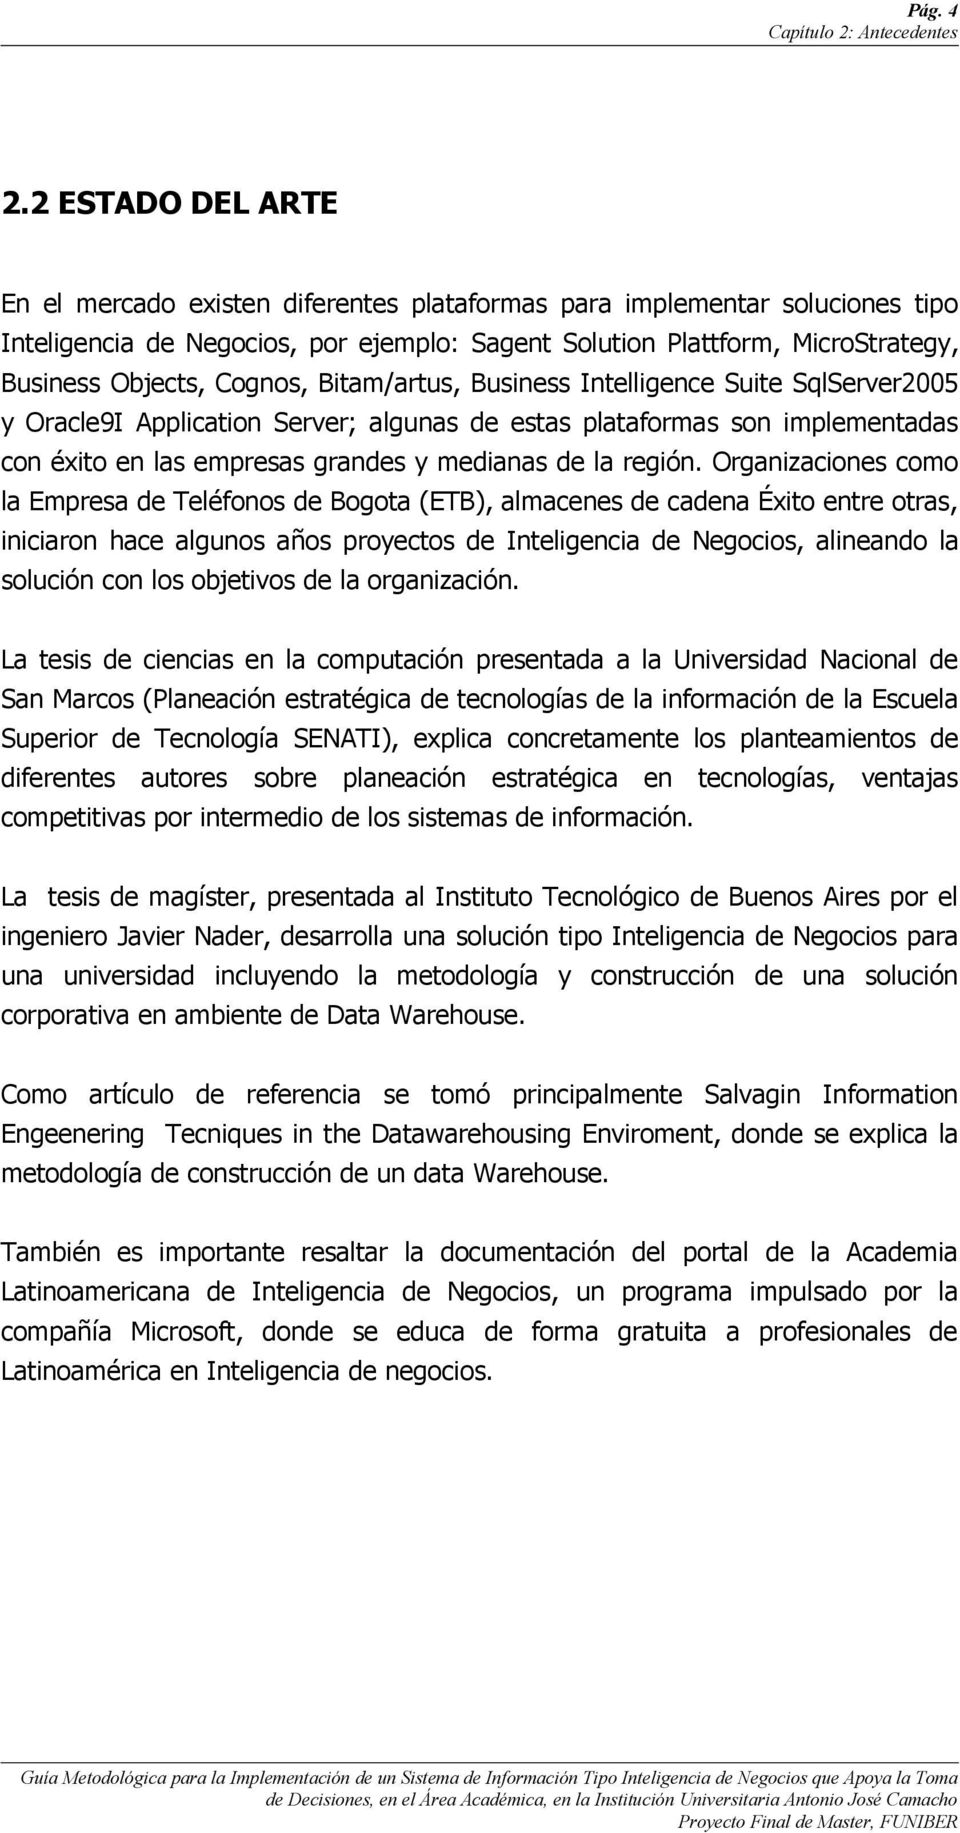 Cognos, Bitam/artus, Business Intelligence Suite SqlServer2005 y Oracle9I Application Server; algunas de estas plataformas son implementadas con éxito en las empresas grandes y medianas de la región.